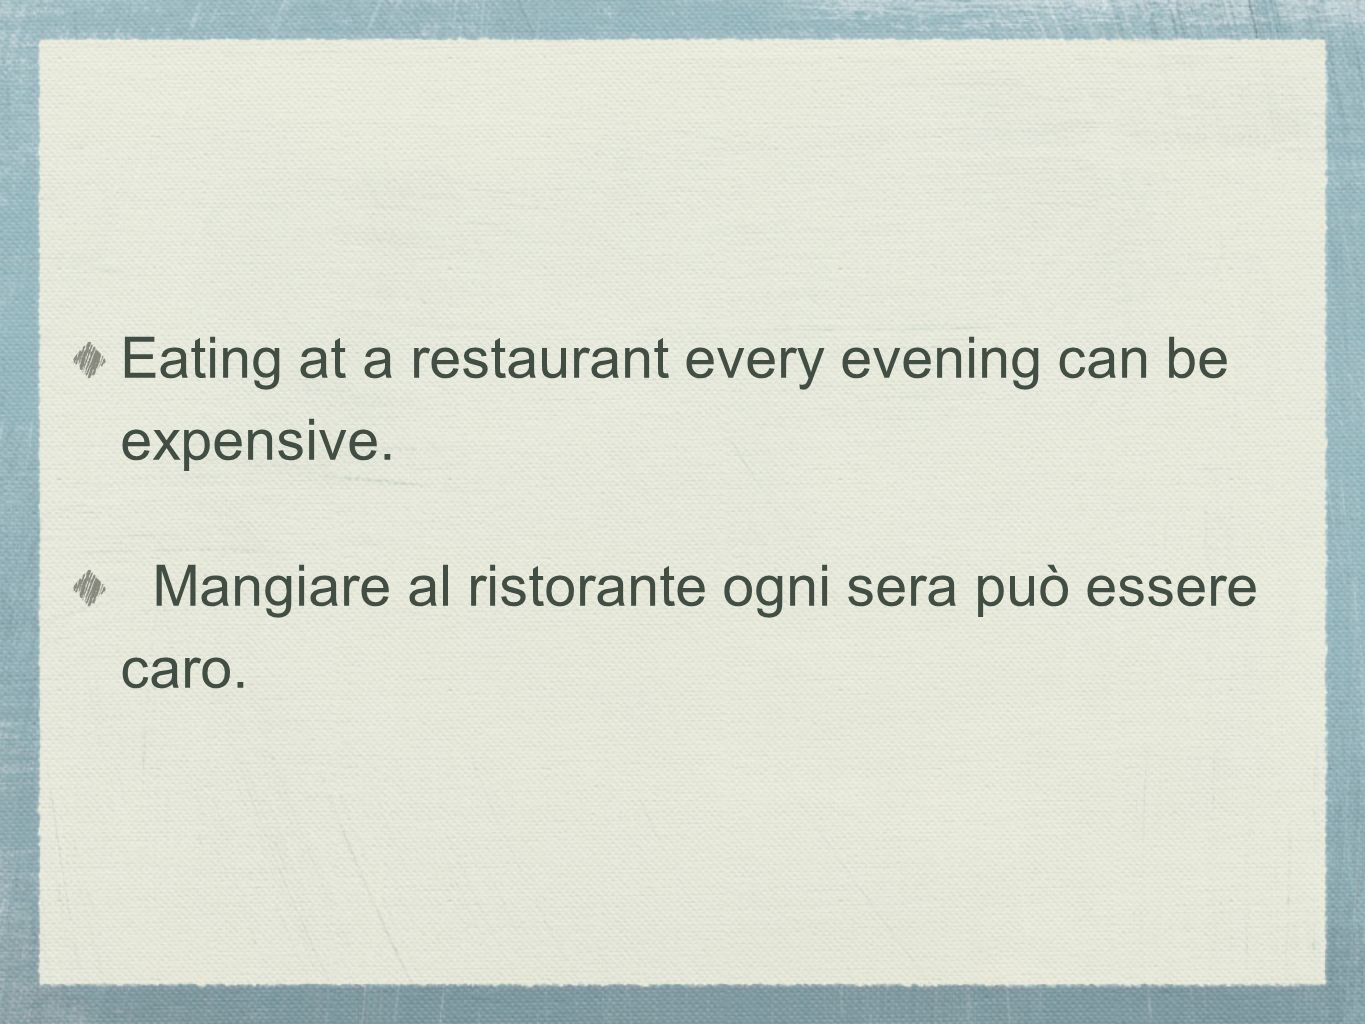 Eating at a restaurant every evening can be expensive.